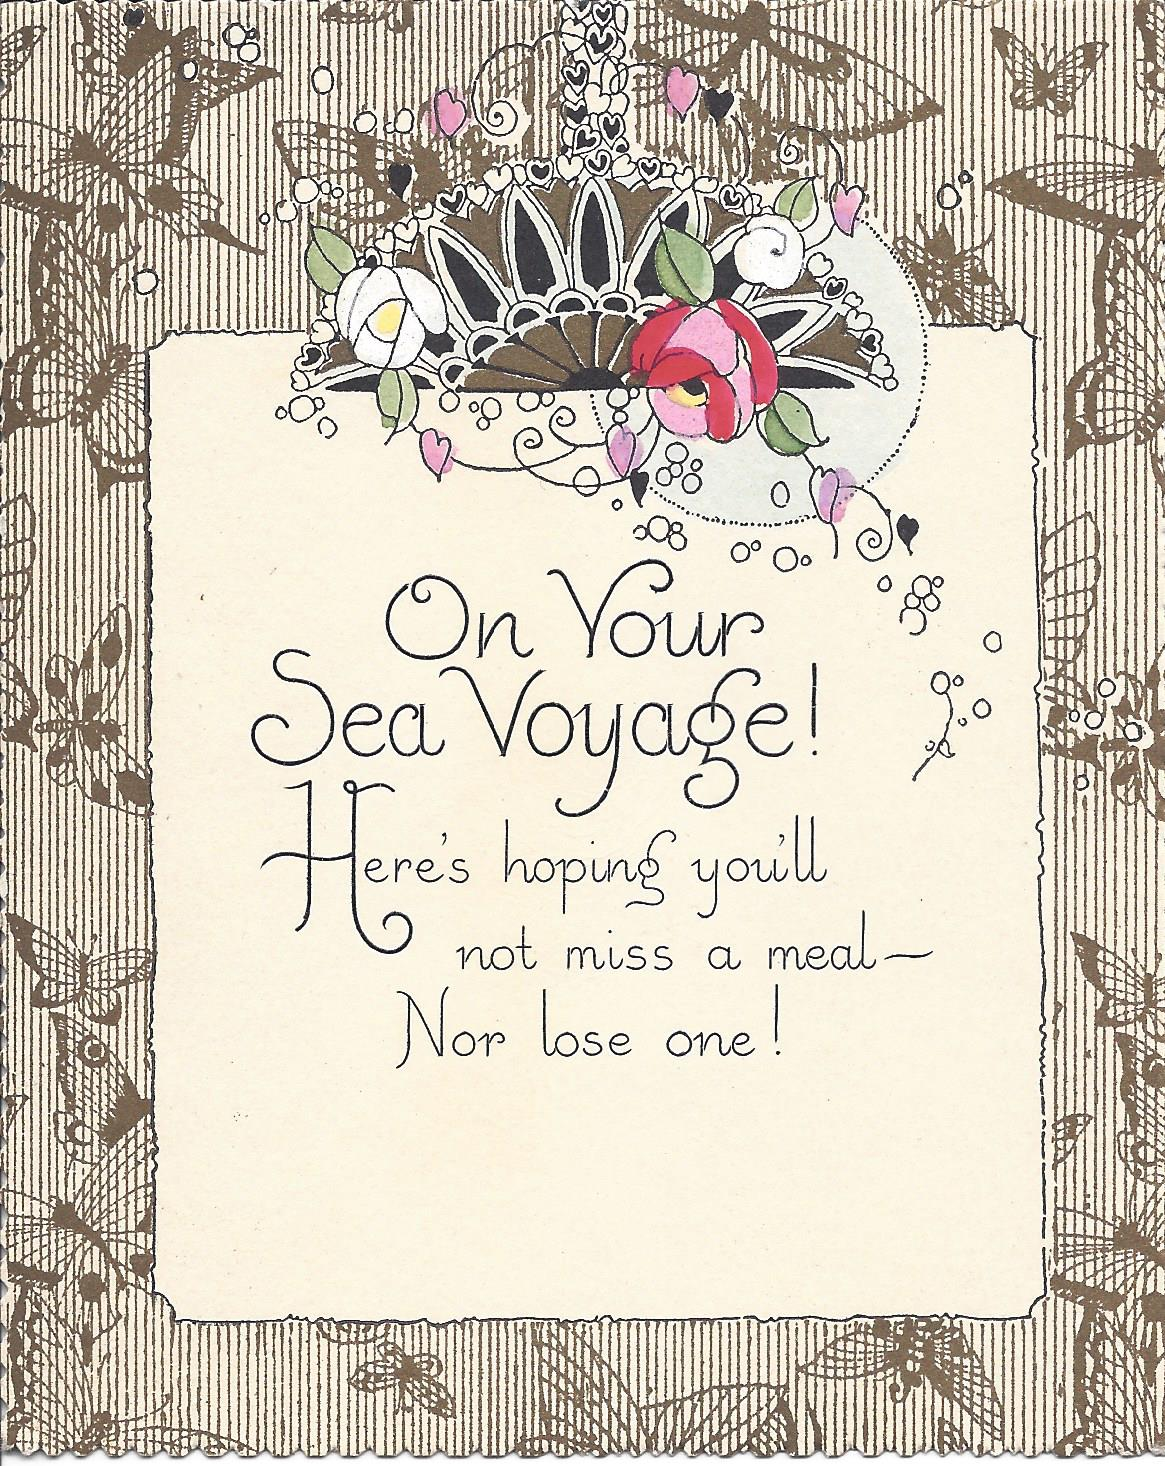 A Bon Voyage card with a caveat – don't get seasick!